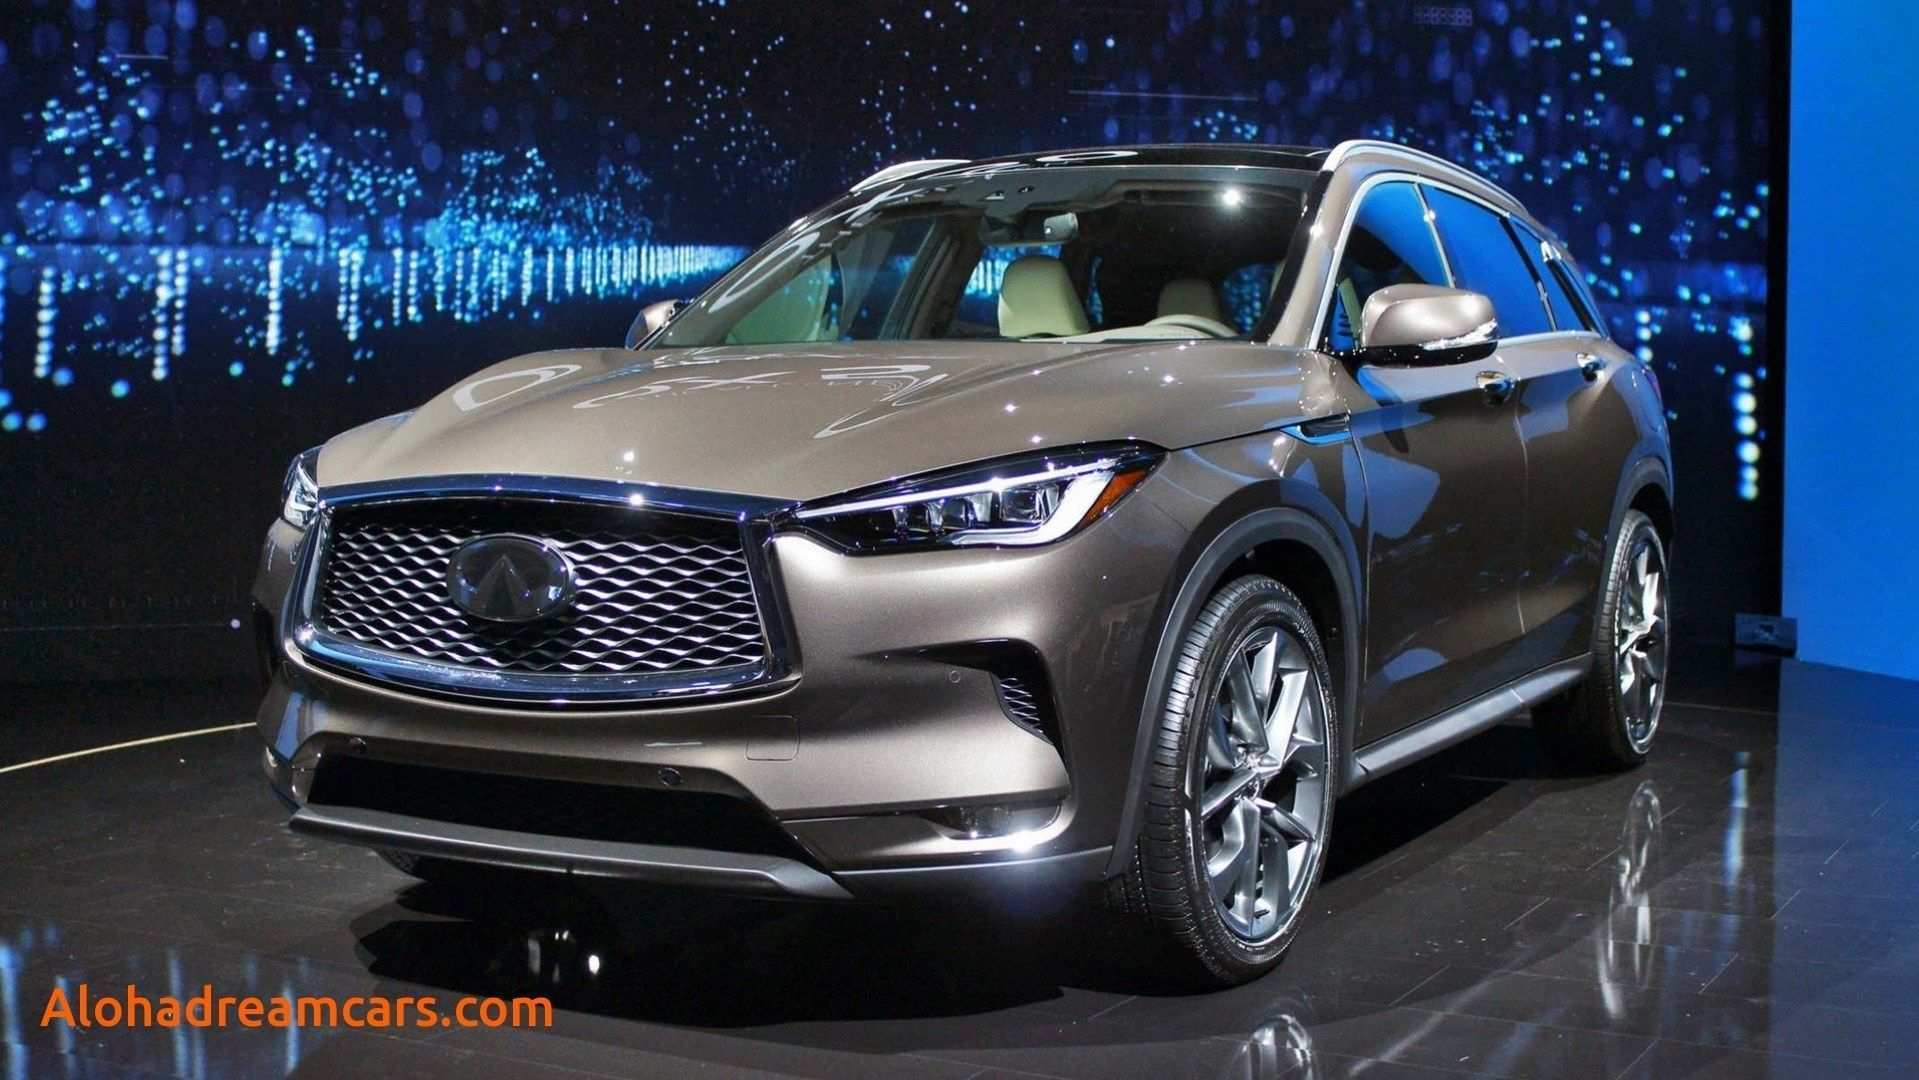 64 The 2020 Infiniti Qx50 Black Rumors with 2020 Infiniti Qx50 Black